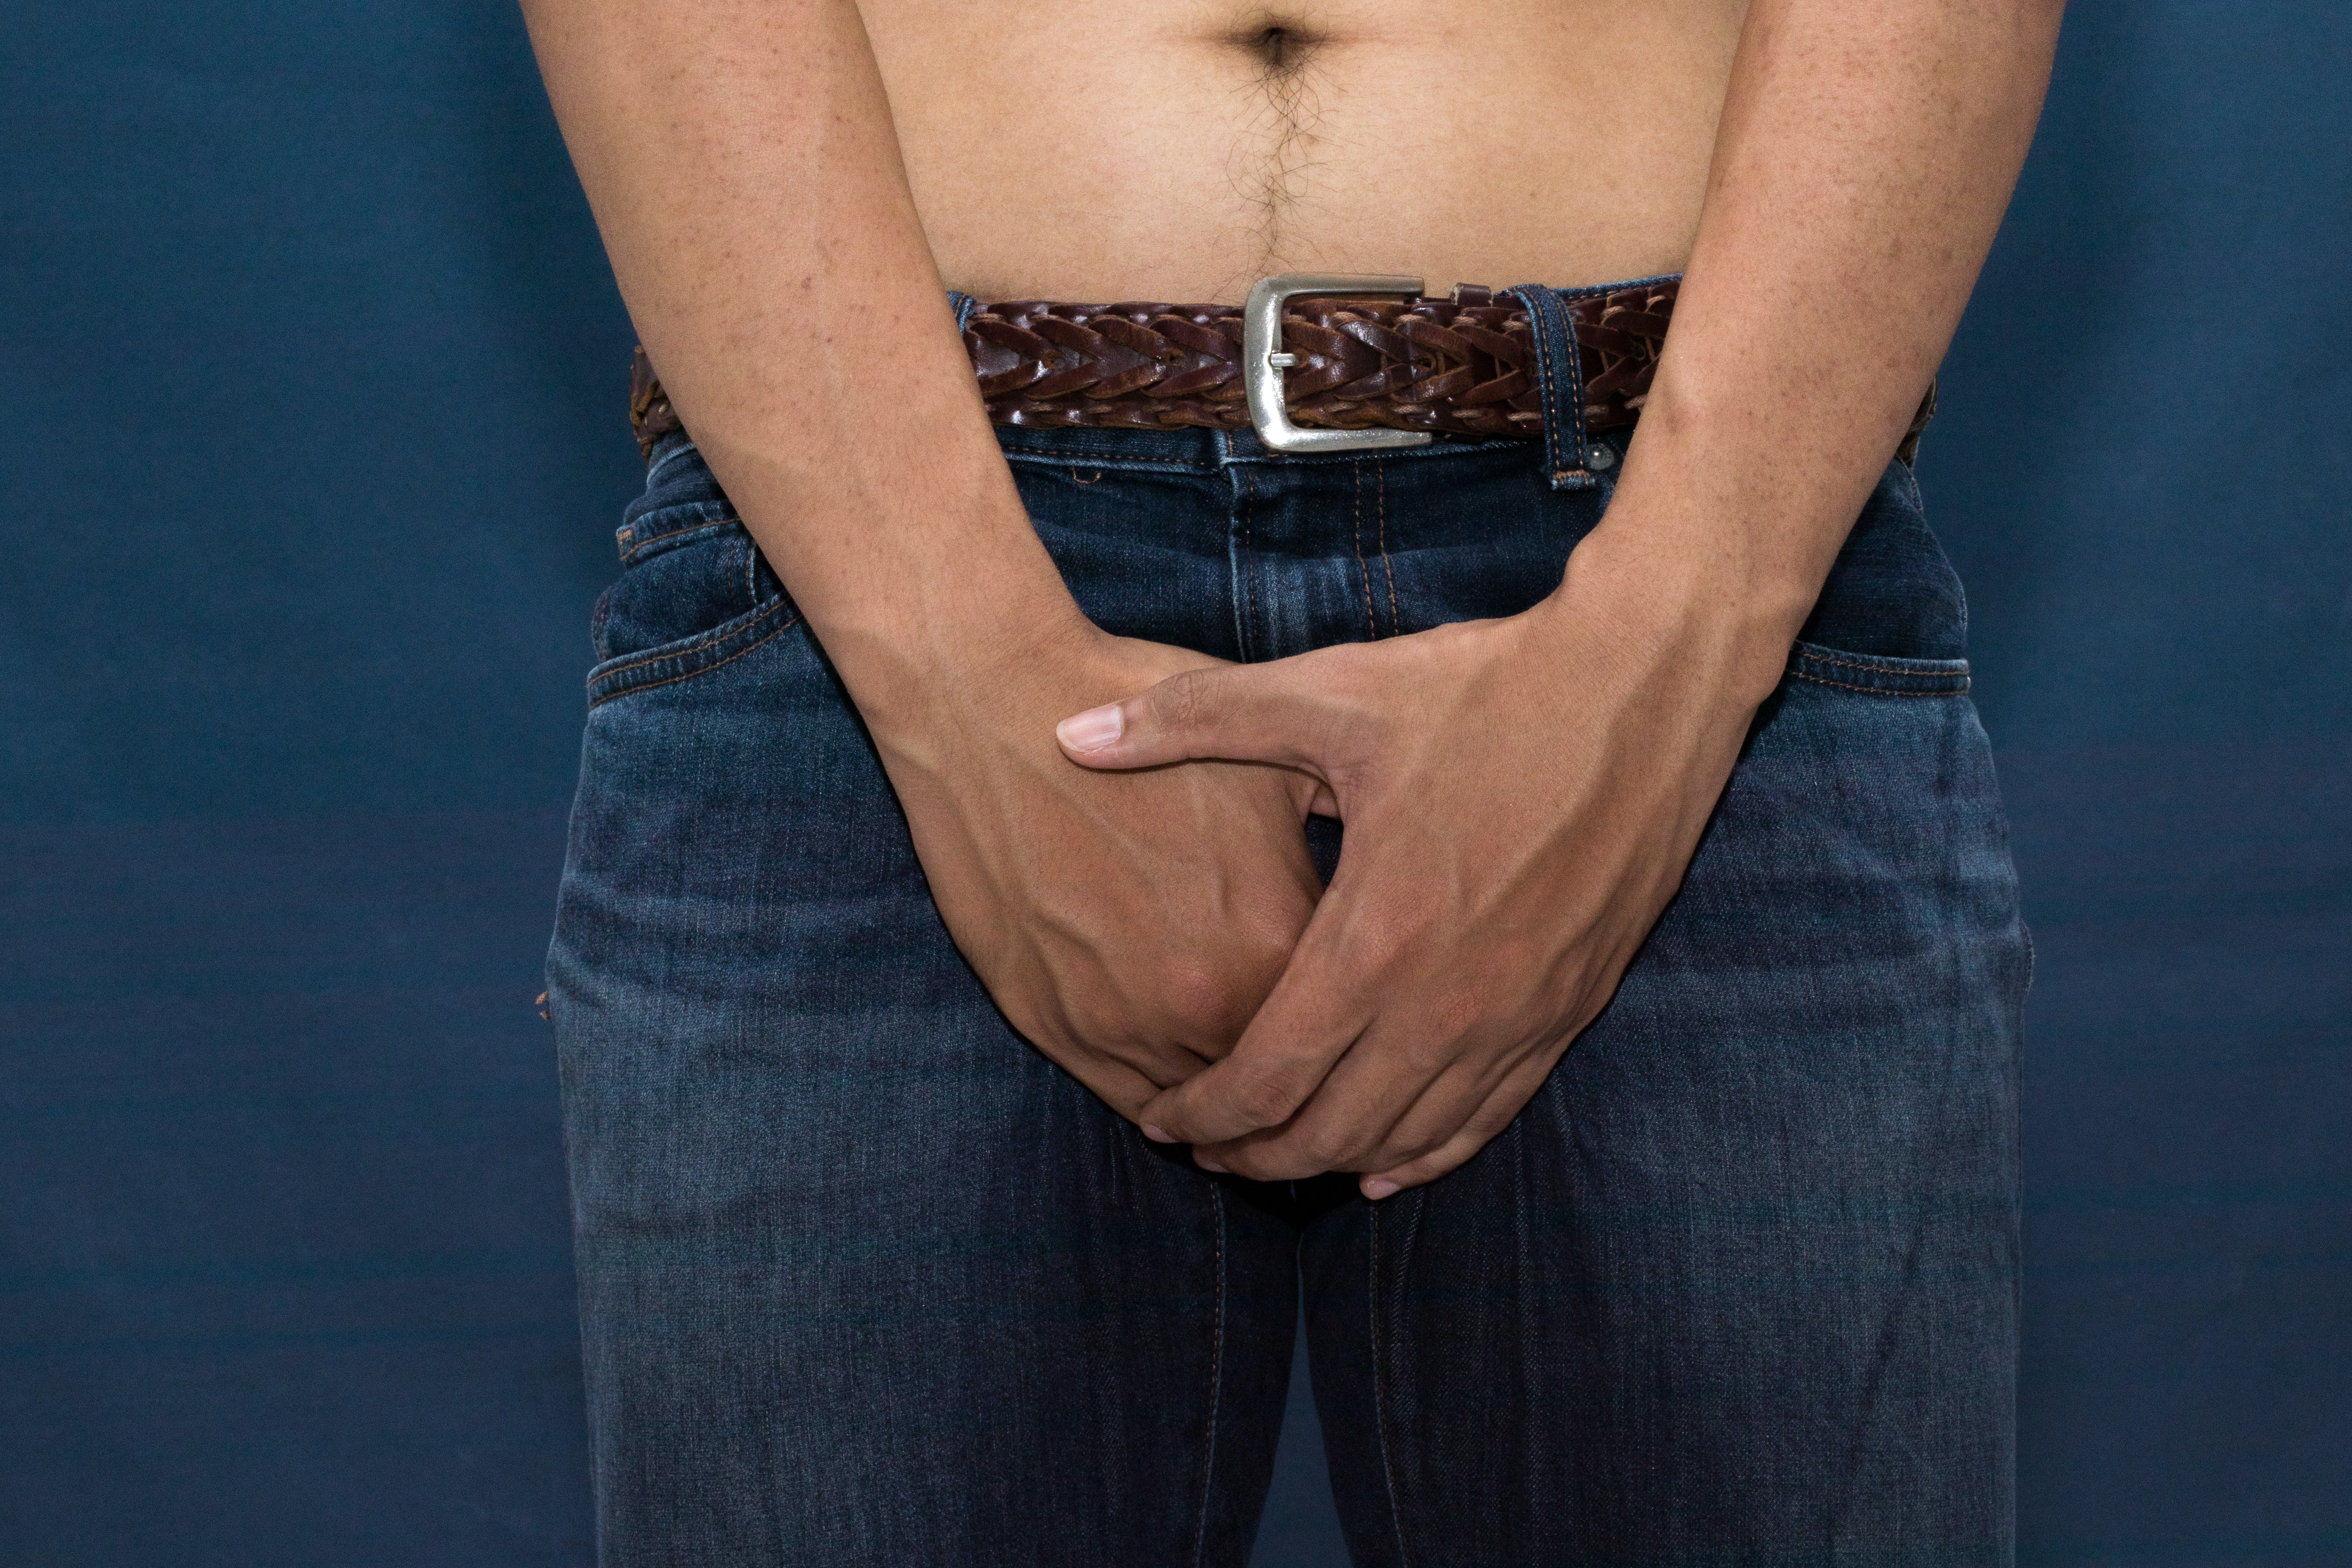 An image depicting a person suffering from painful testicle lump symptoms